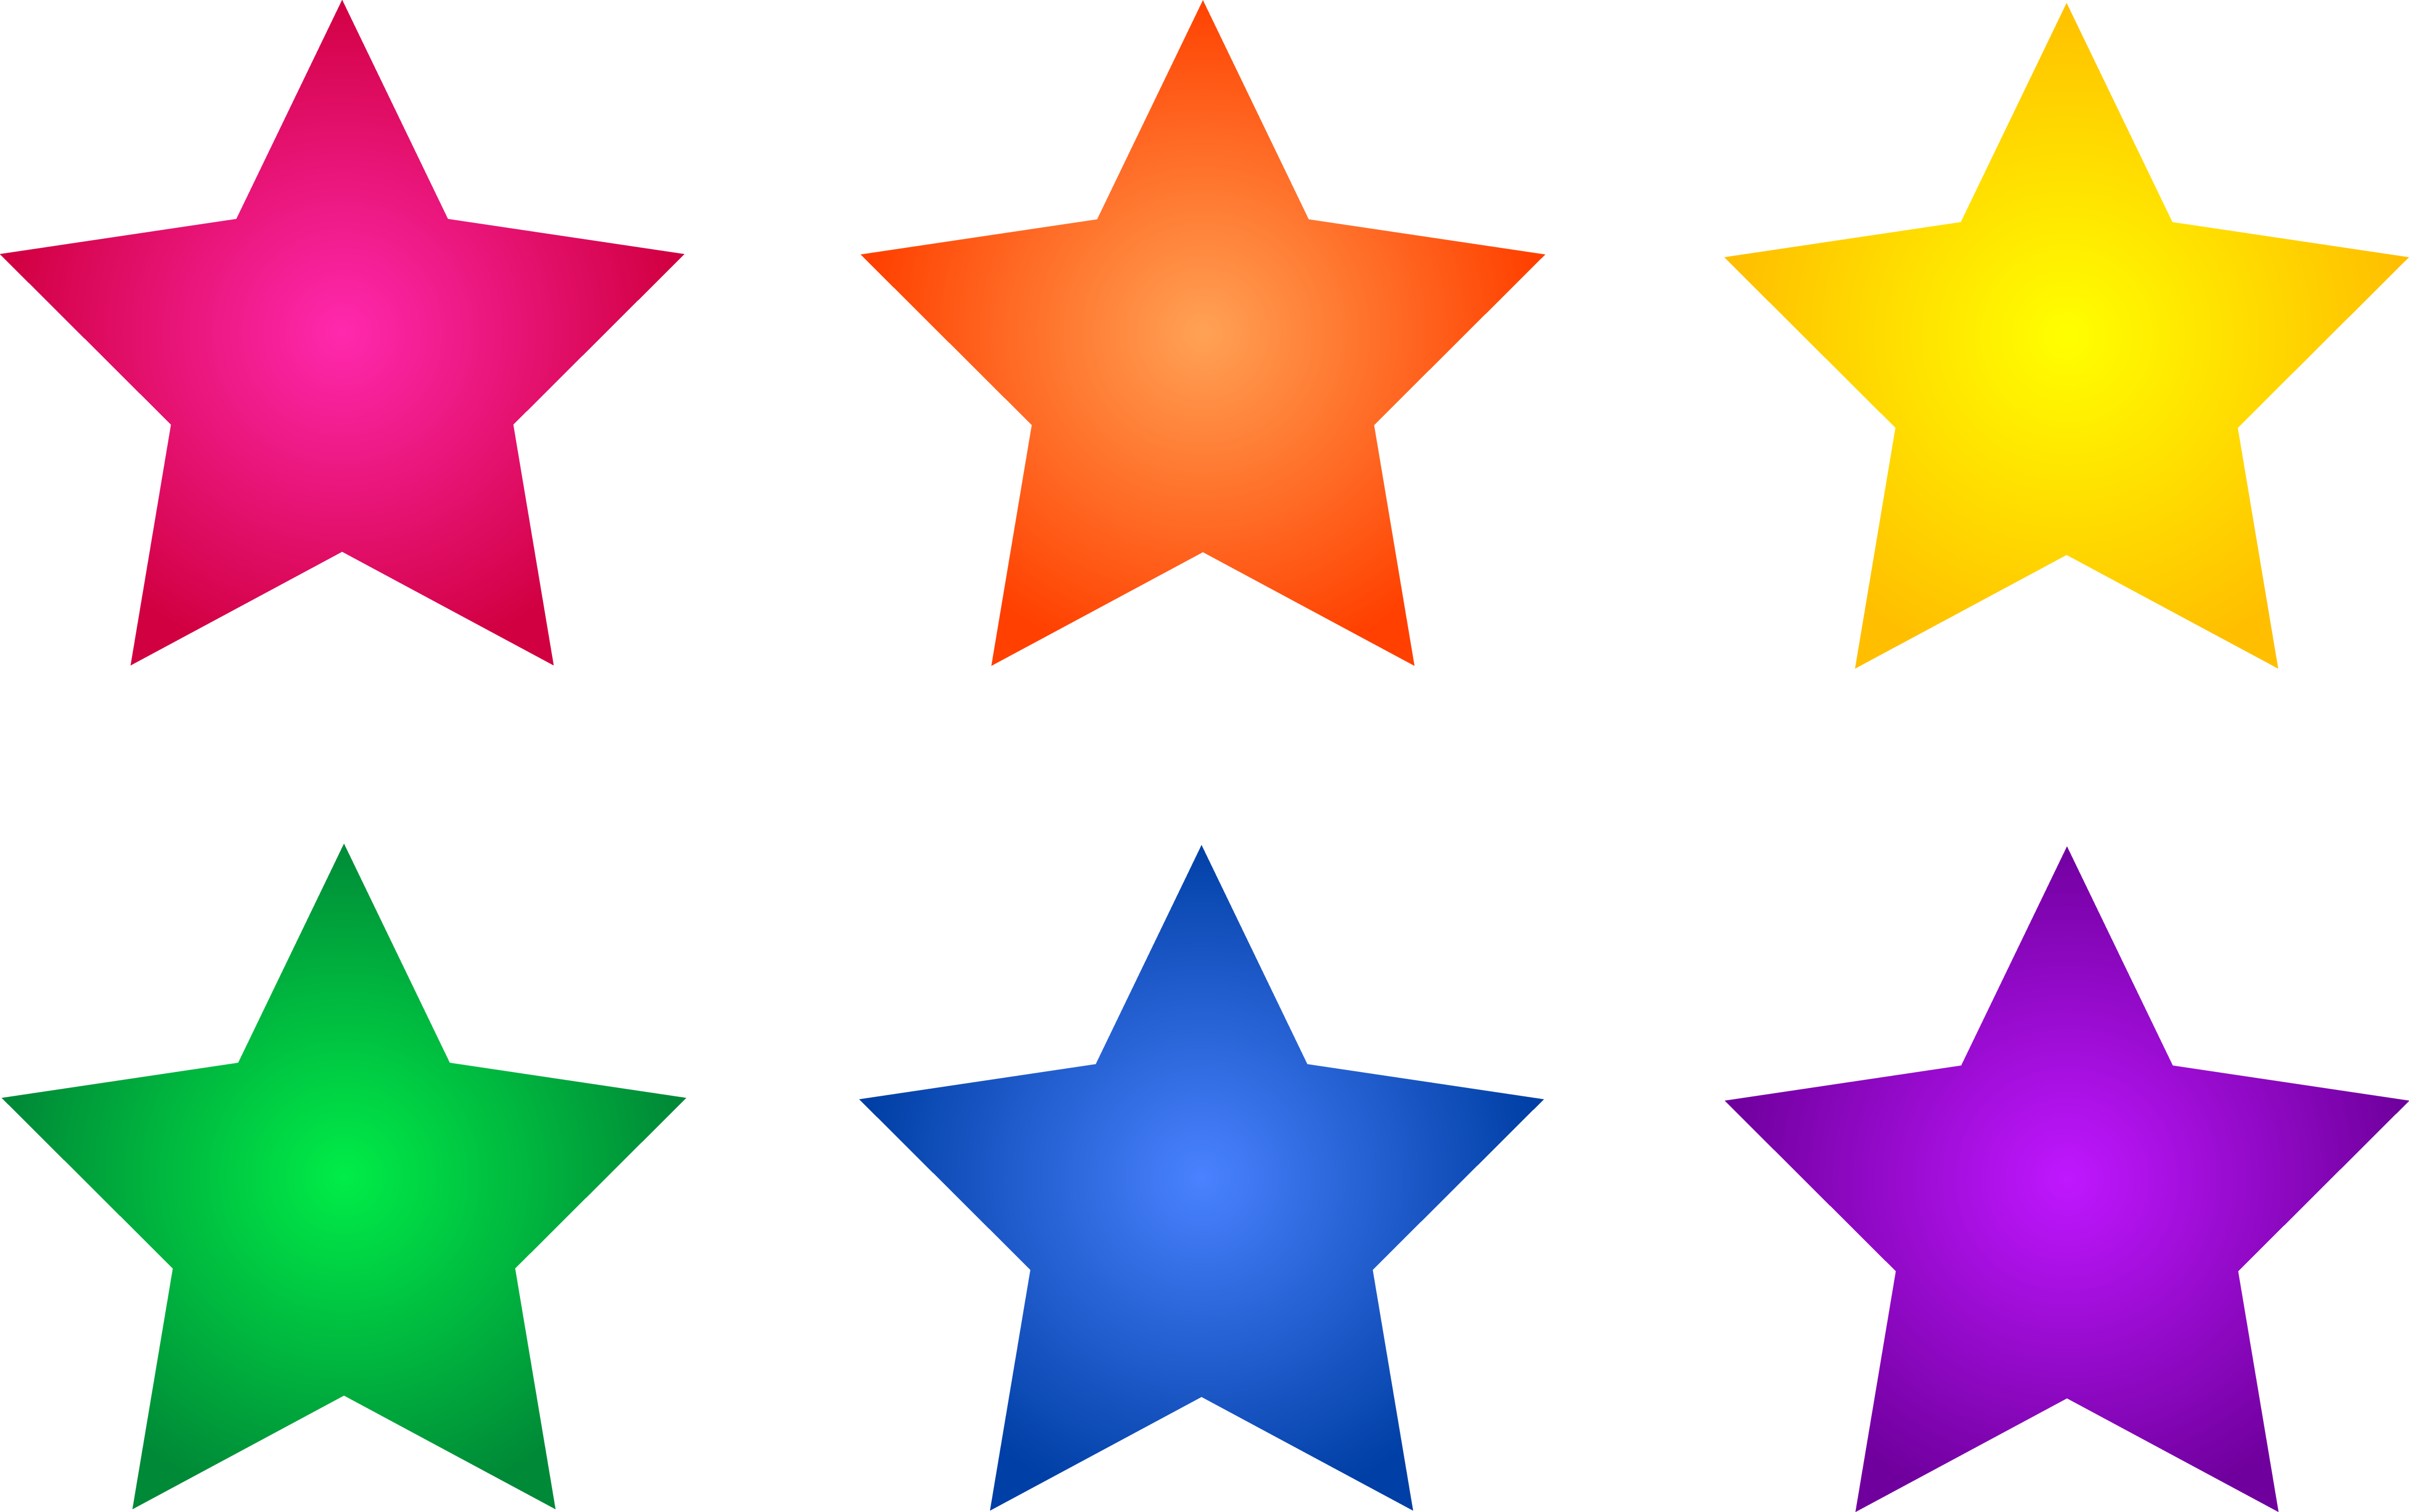 Free Stars Clipart, Download Free Clip Art, Free Clip Art on.